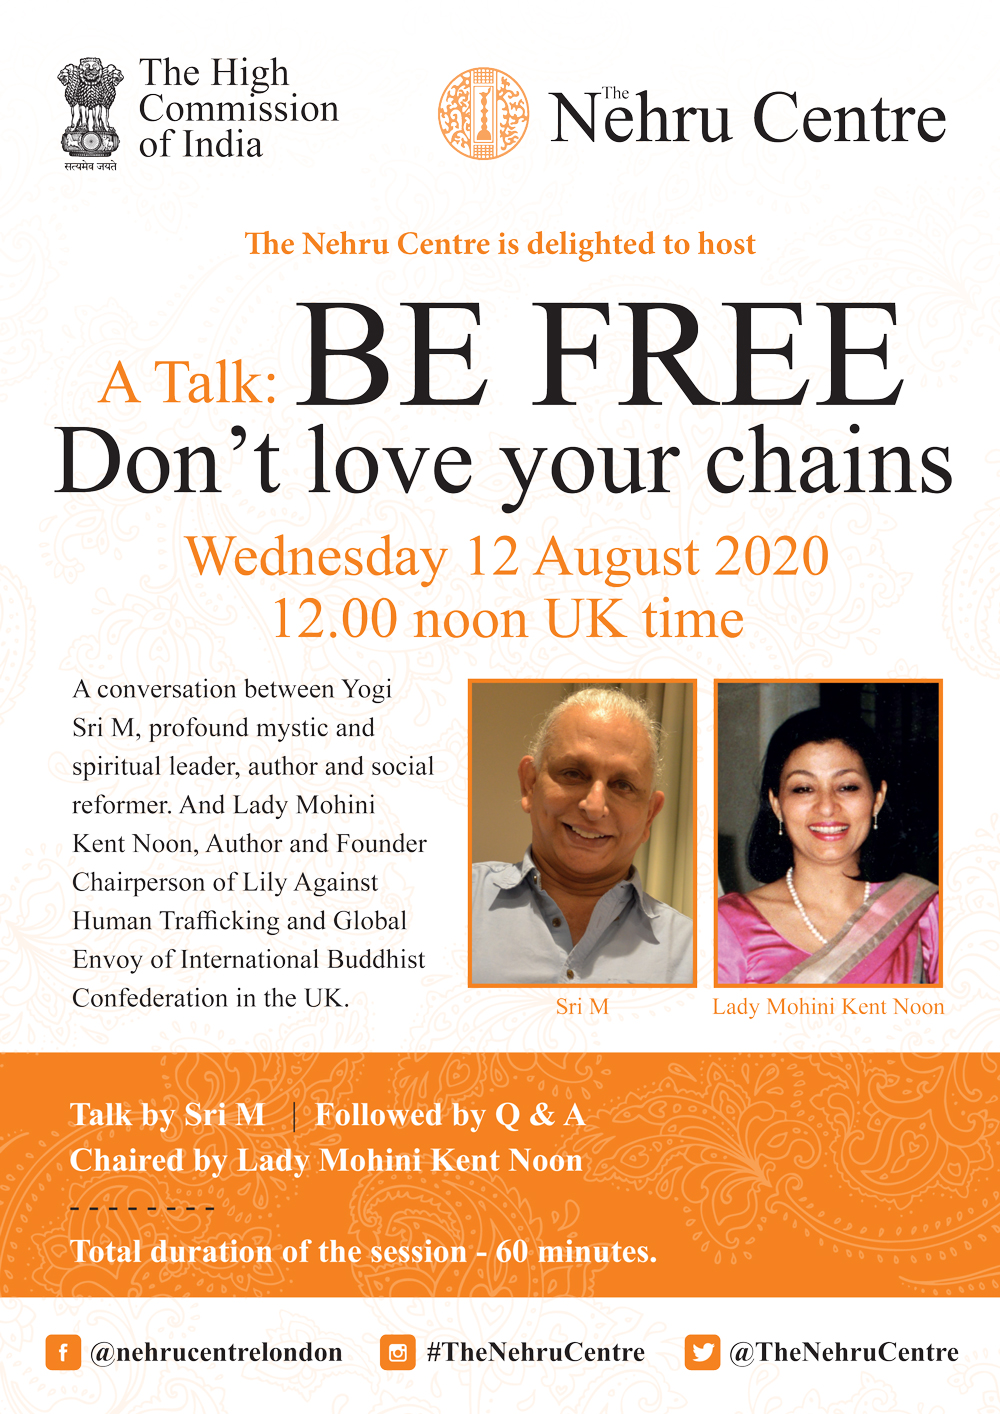 Sri M conversation with Lady Mohini Kent August 12 2020